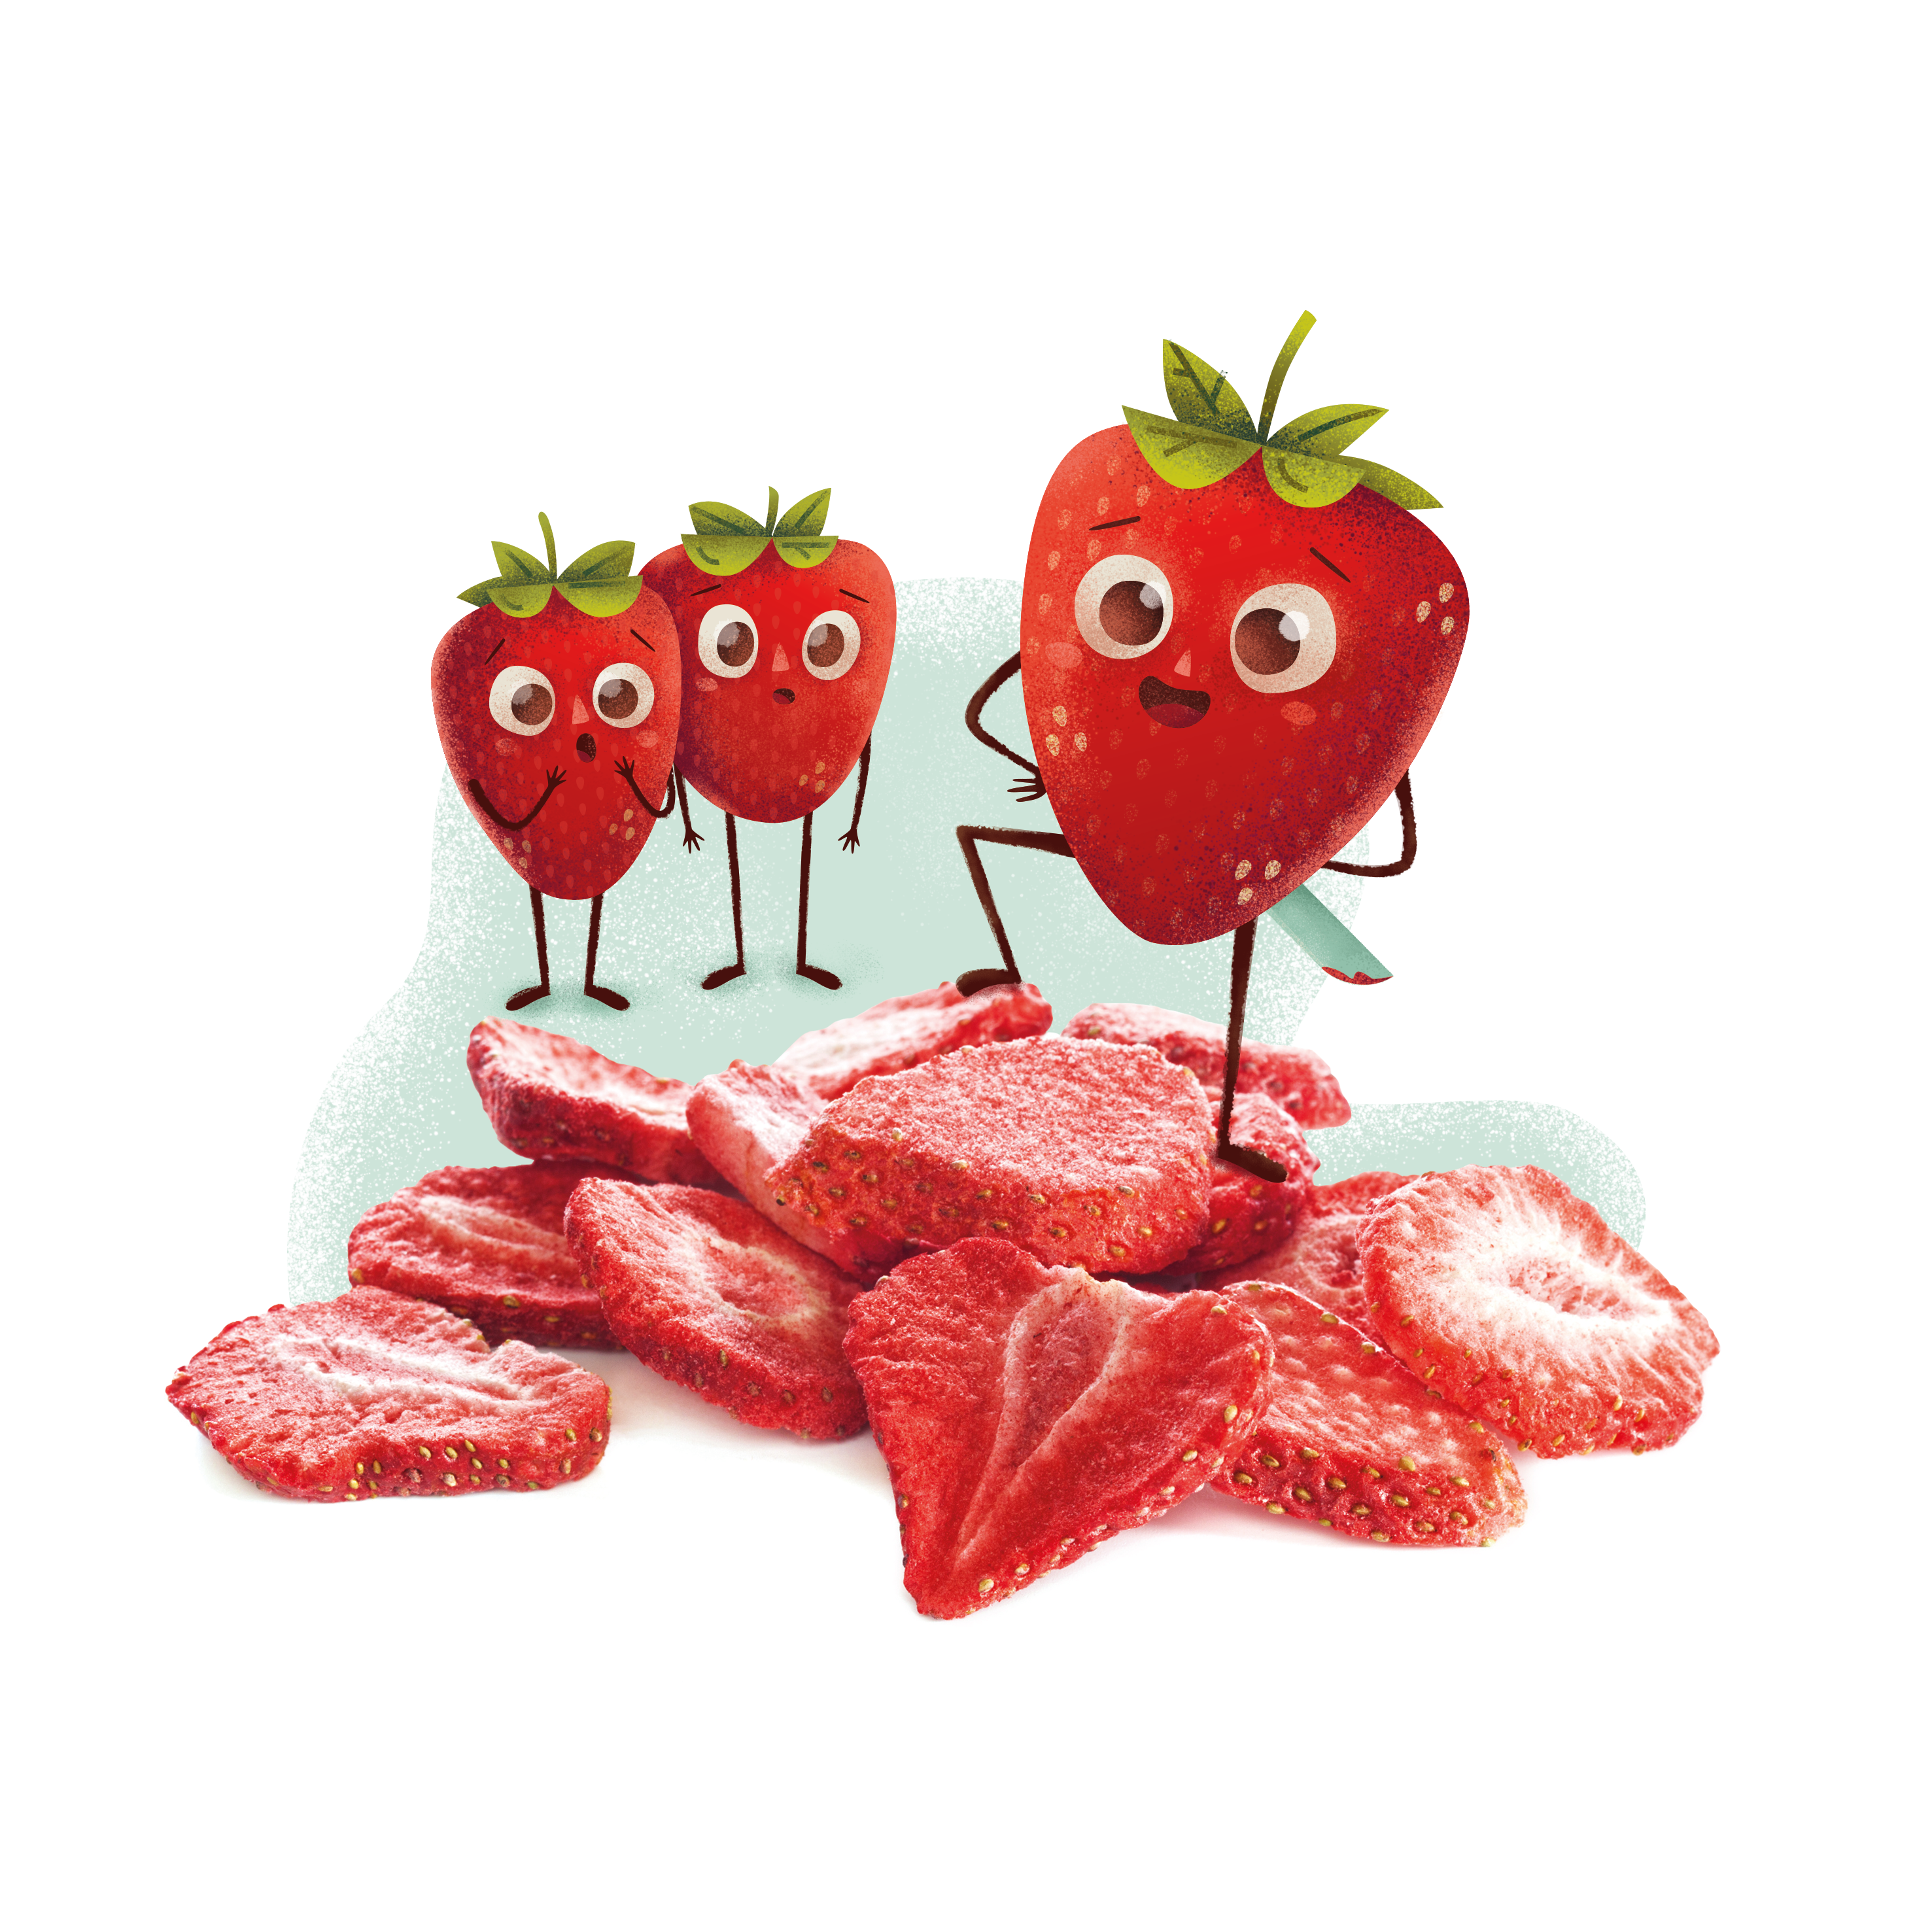 Show me a cool and funny a strawberry can look. Create a strawberry figure!